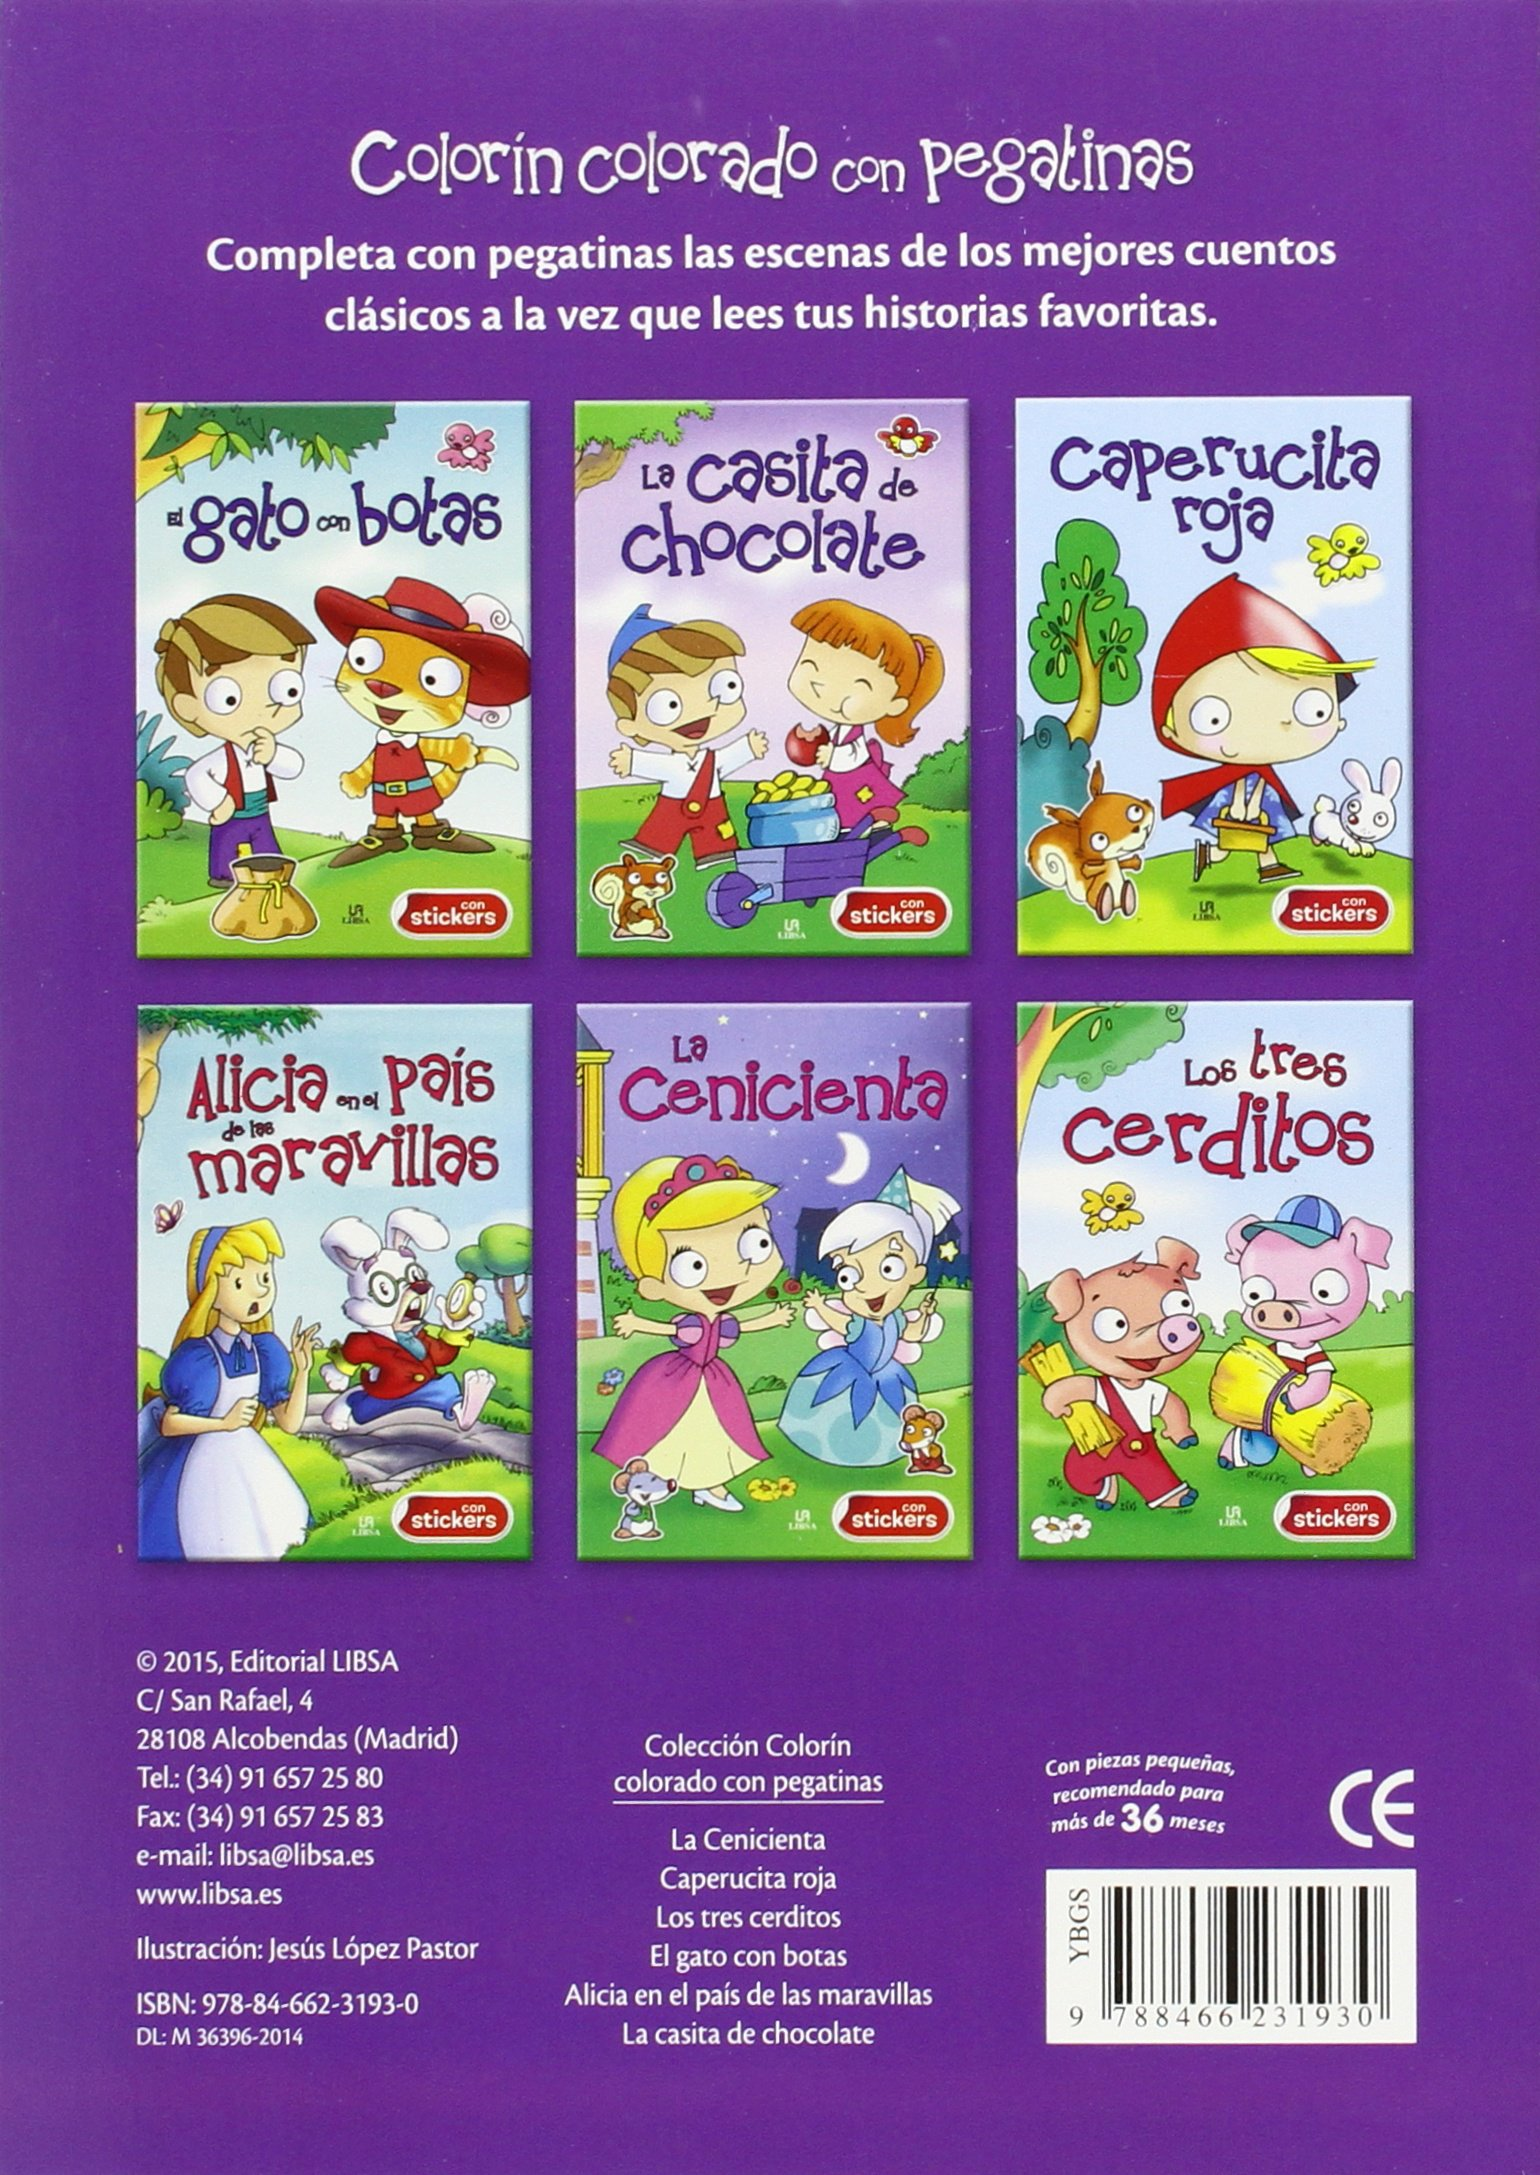 LA CASITA DE CHOCOLATE-CON STICKERS: Ediciones Winbook: 9788466231930: Amazon.com: Books